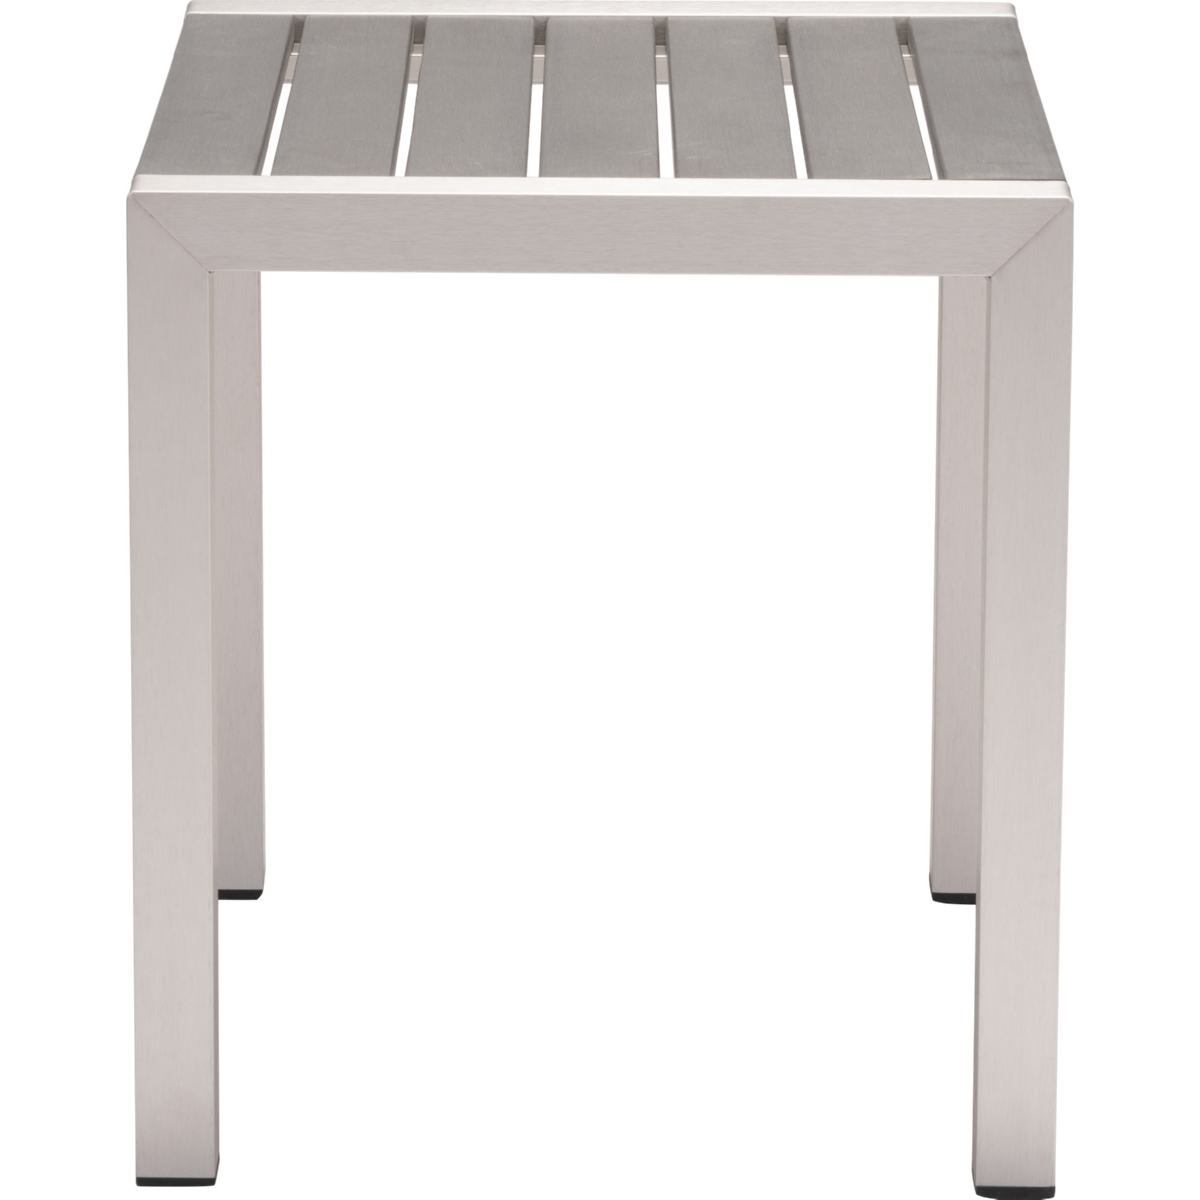 Cosmopolitan Outdoor Side Table W/ Slatted Polywood Top On Brushed Aluminum